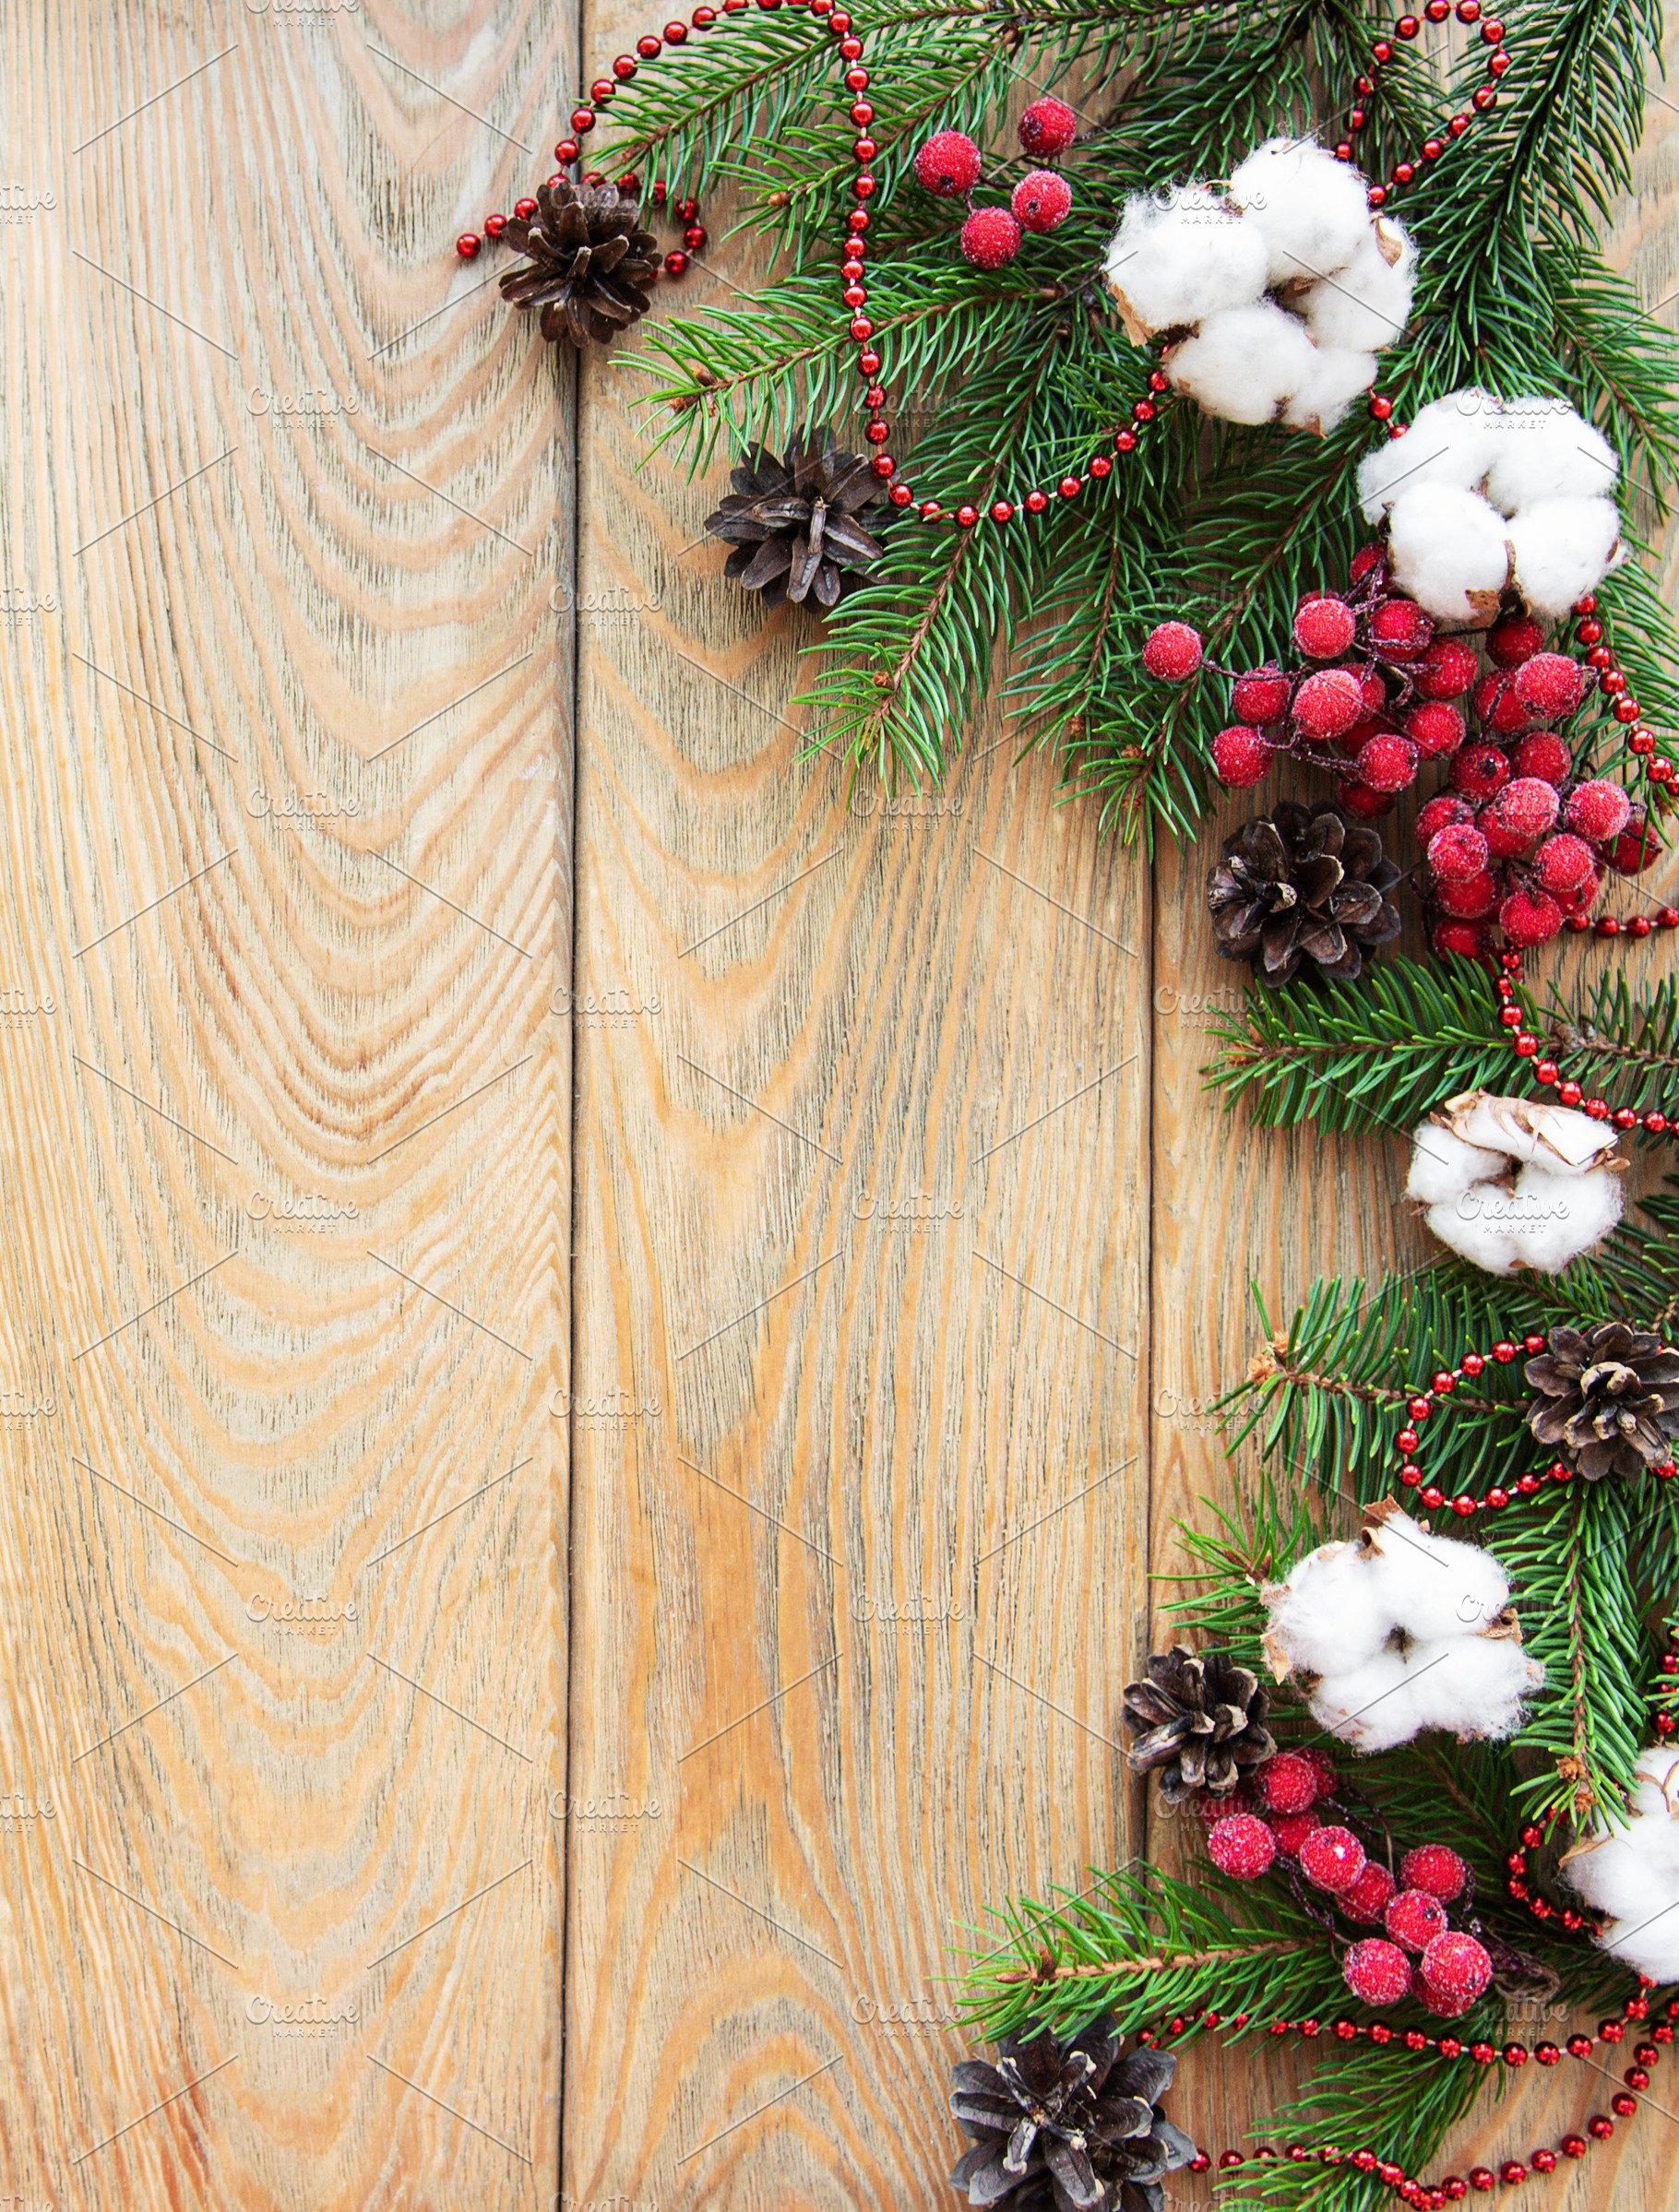 Christmas Holiday Images.Christmas Holiday Background